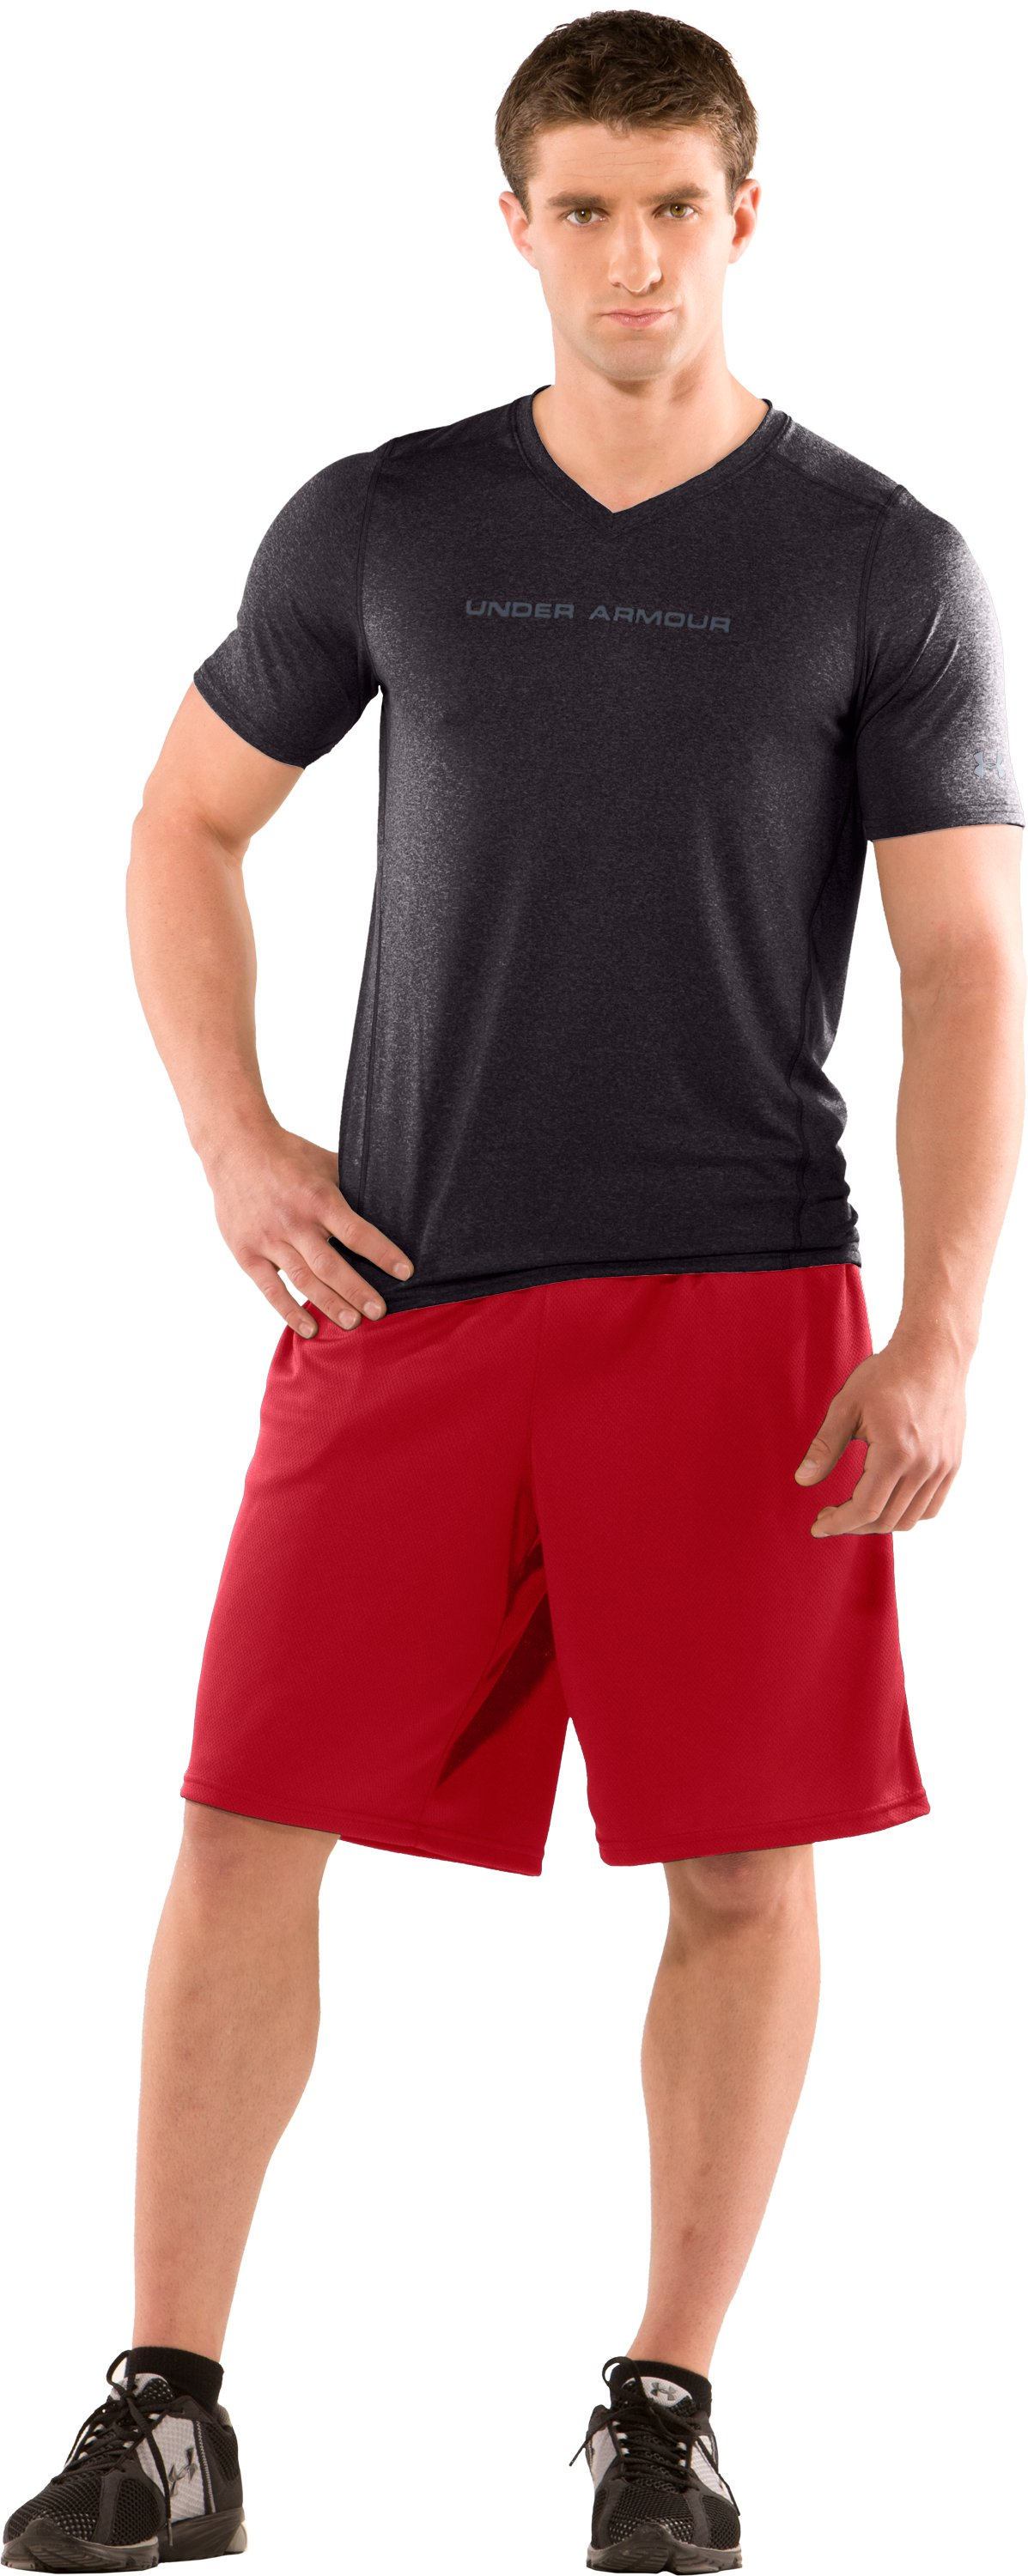 Men's HeatGear® Touch Fitted Short Sleeve V-Neck T-Shirt, Carbon Heather